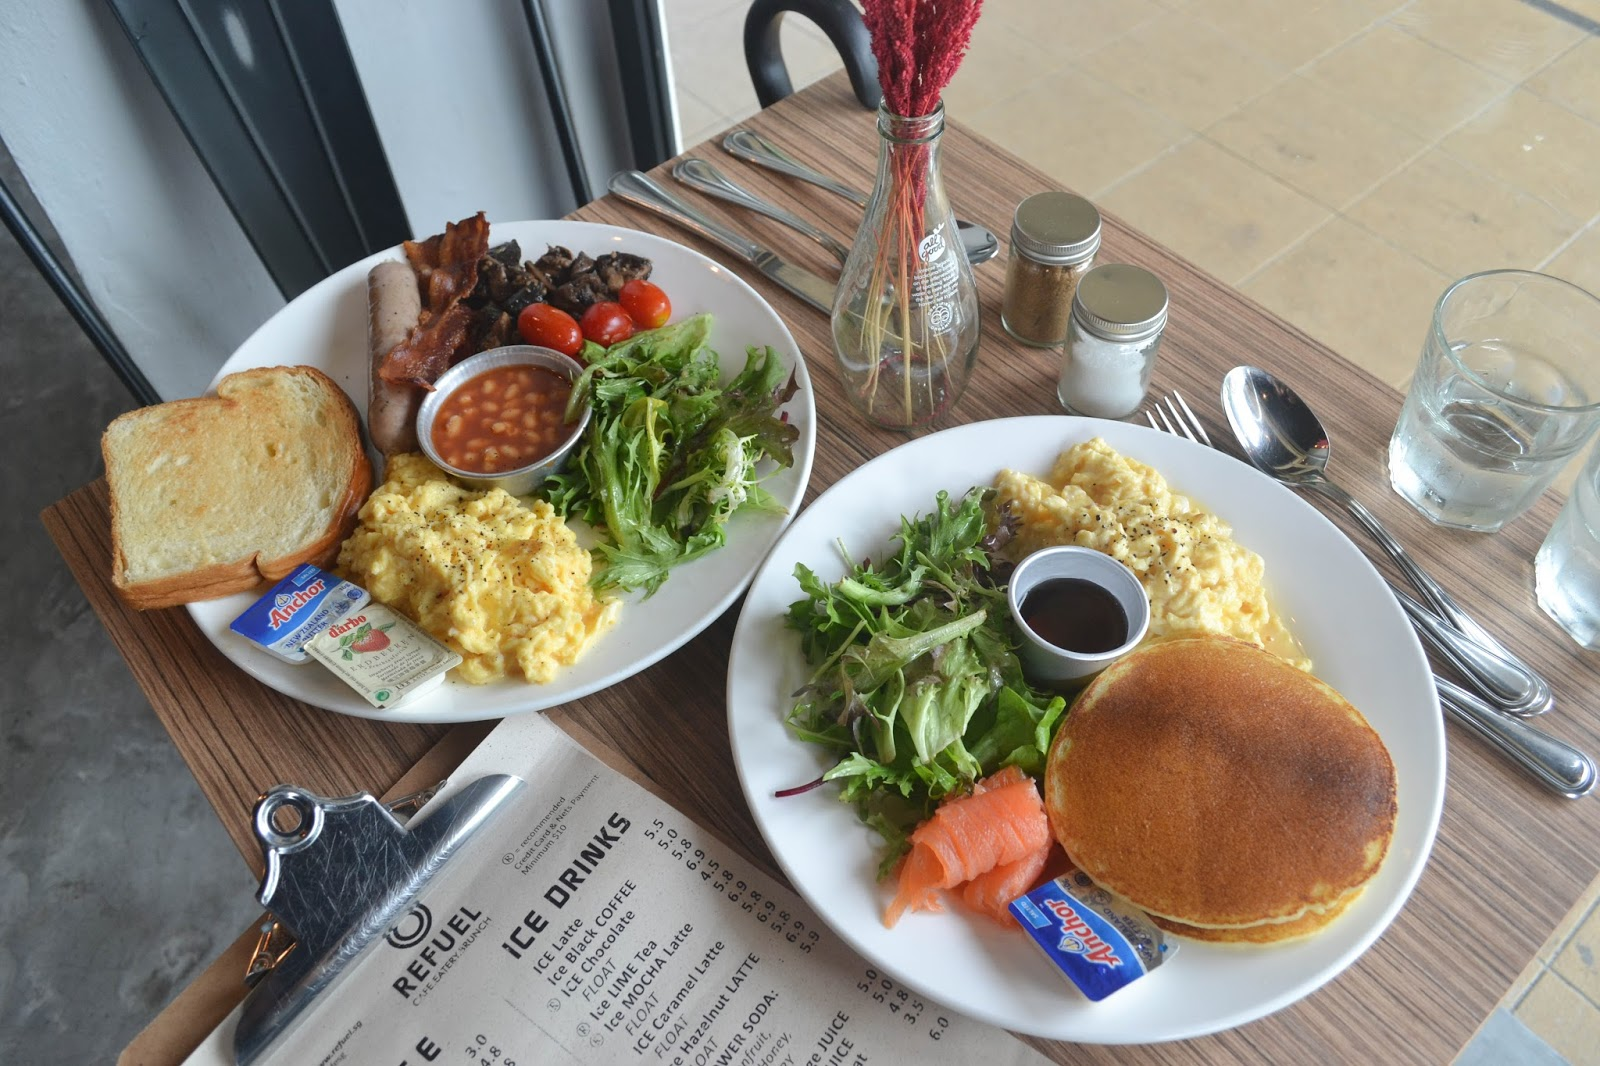 Food Review: Refuel Cafe